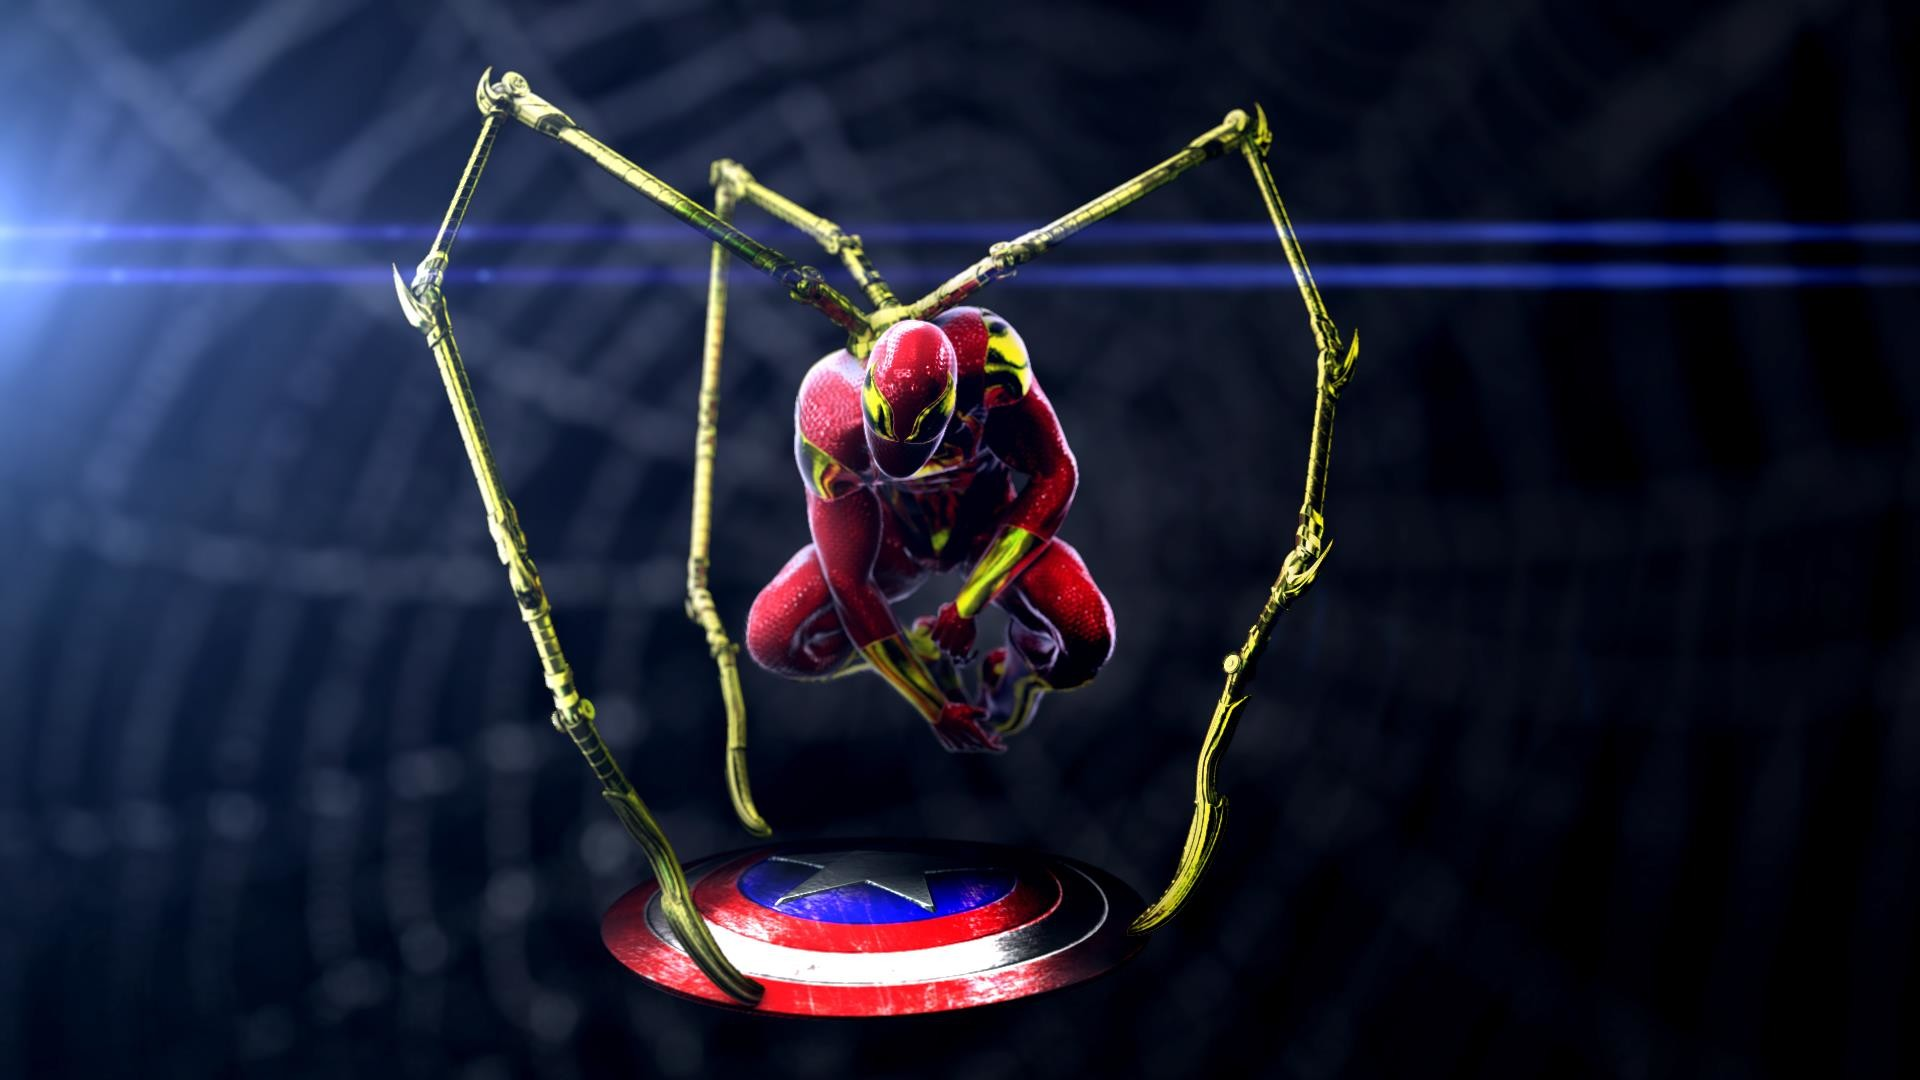 Iron spider hd wallpaper 77 images - Iron man spiderman wallpaper ...